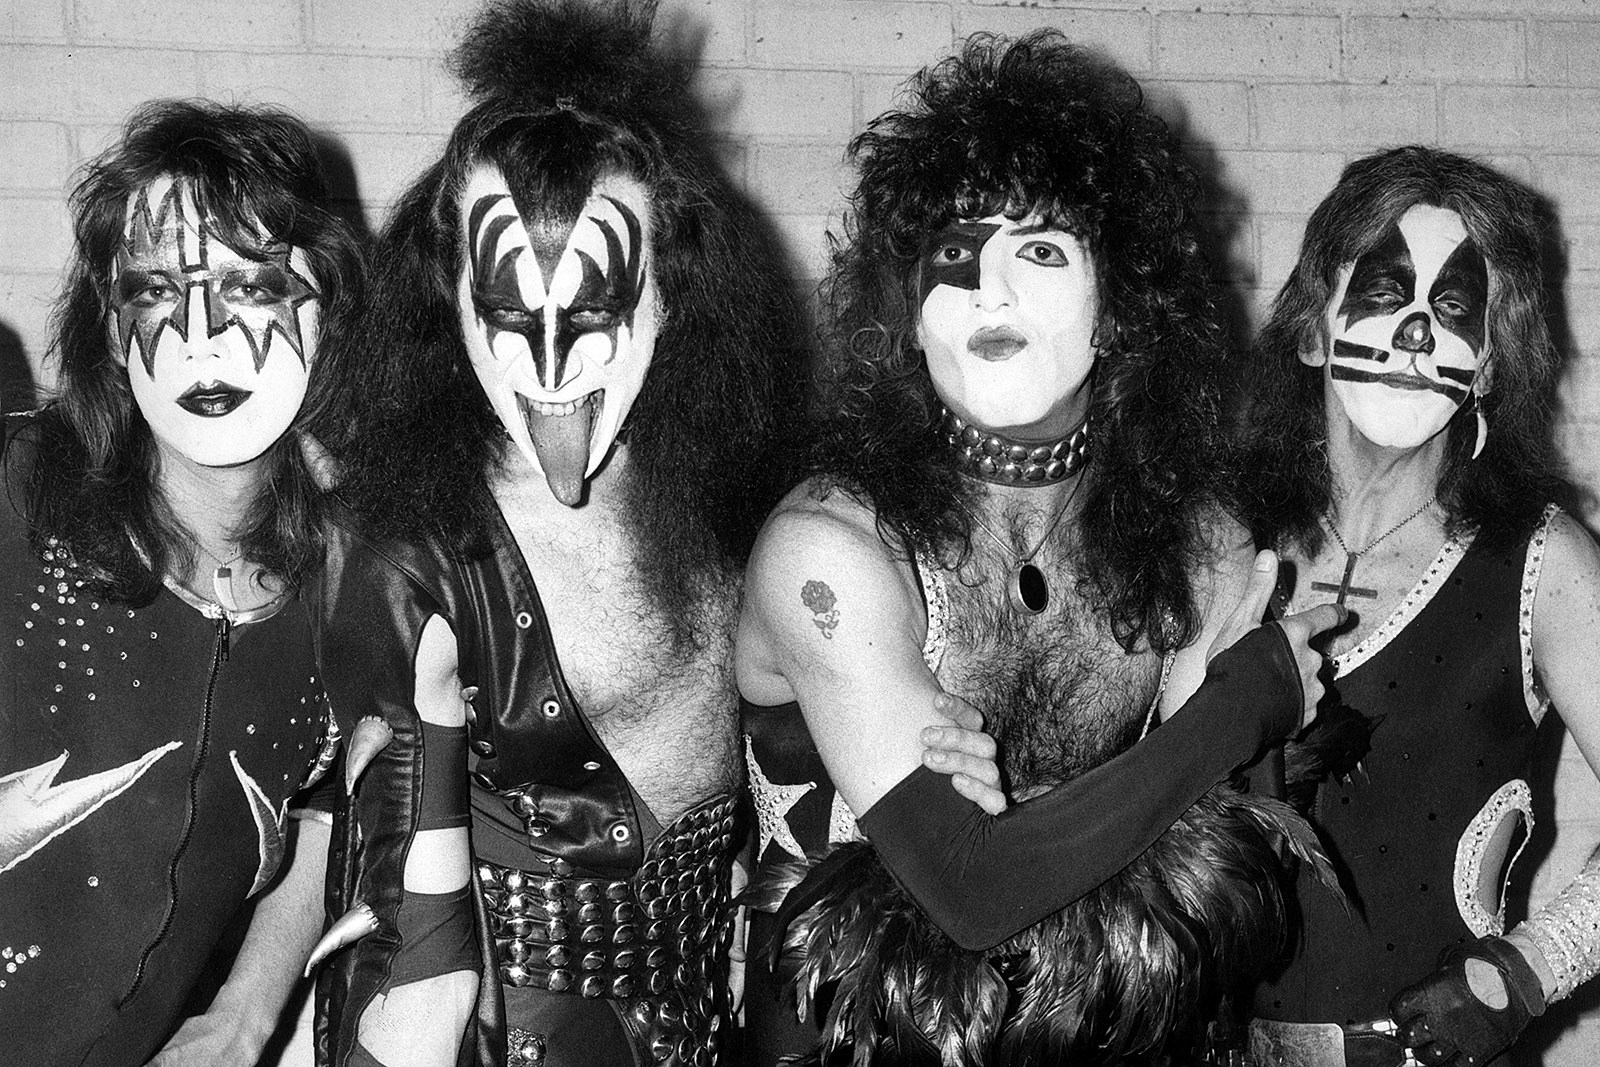 Kiss Biopic Explores 'Social Pressures' That Helped Them Form